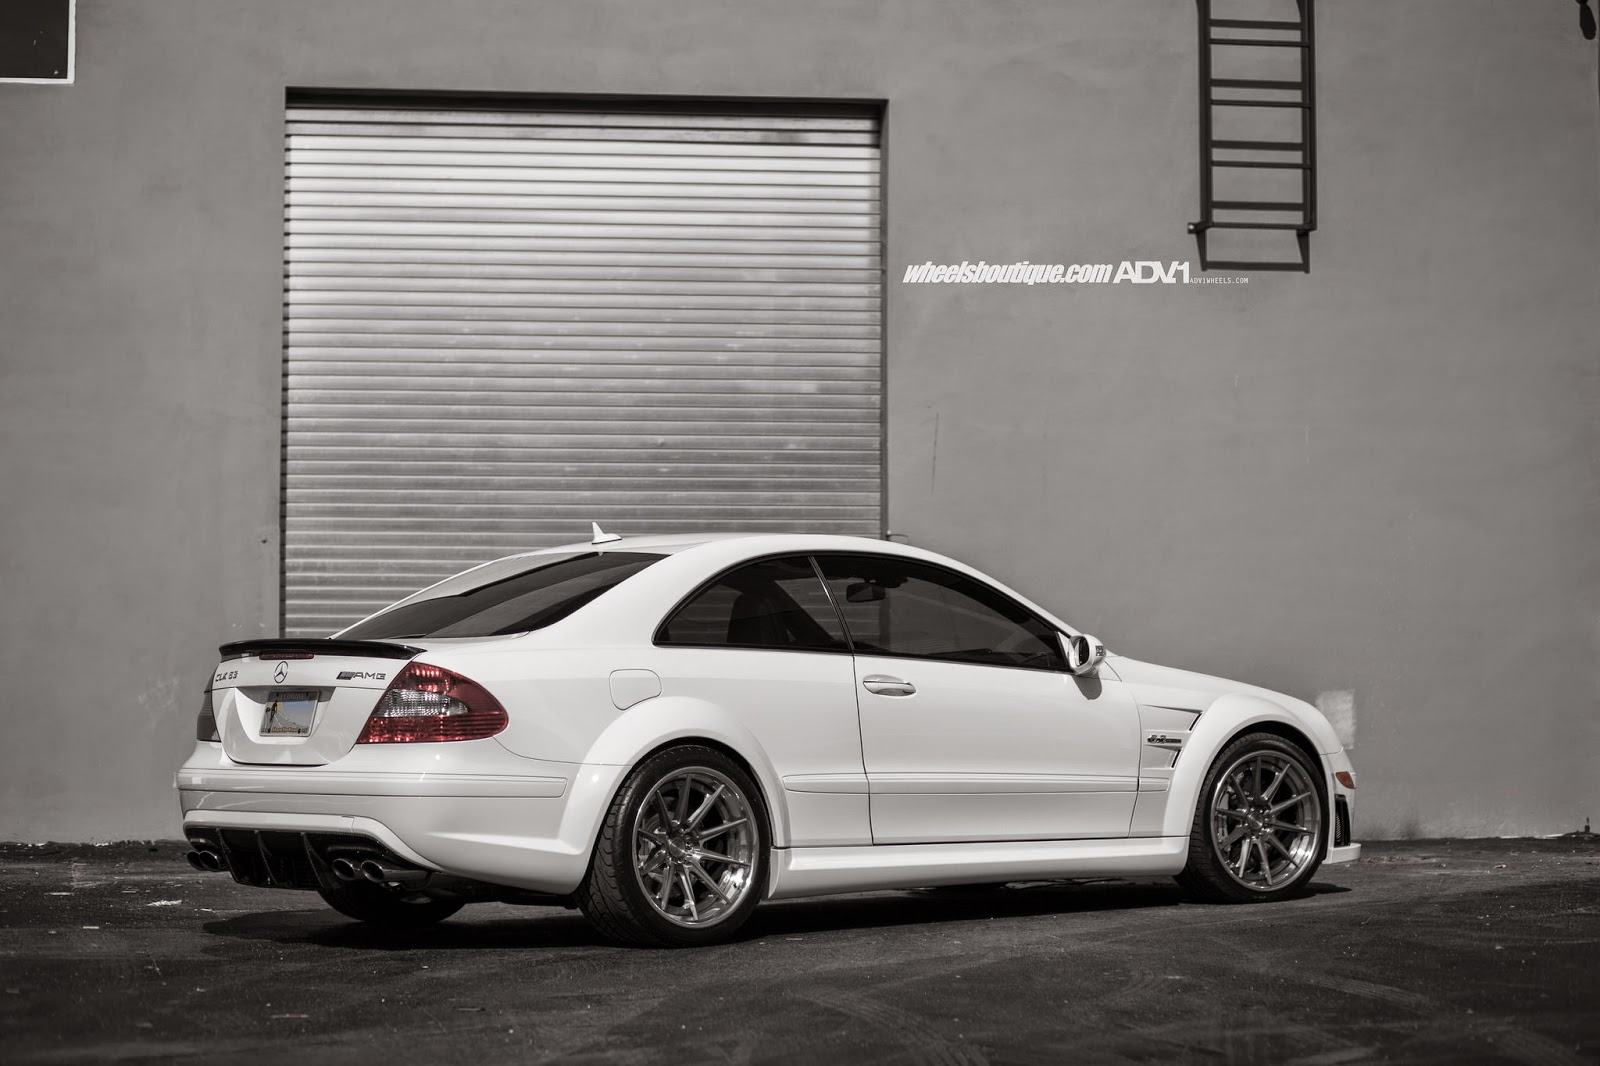 Mercedes benz clk63 amg black series on adv 1 wheels for Mercedes benz s series